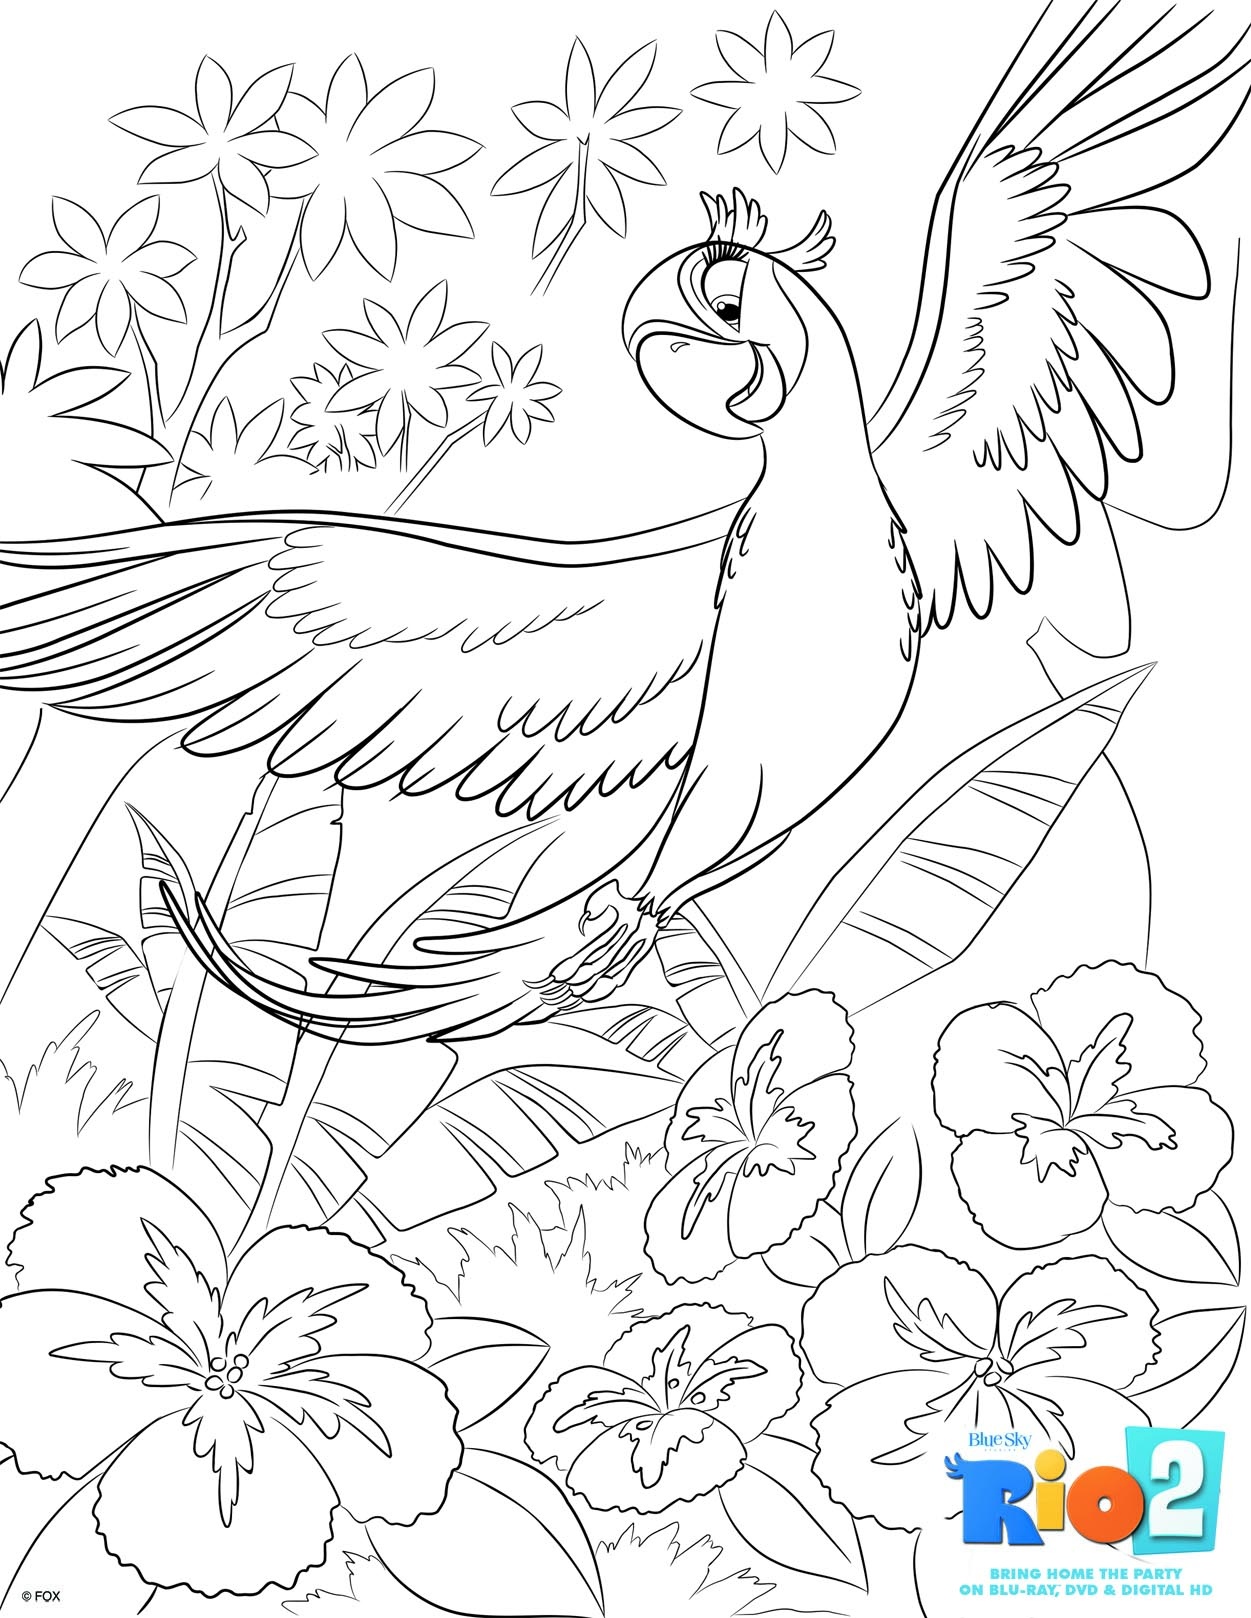 free rio 2 coloring pages - Childrens Colouring Pictures 2